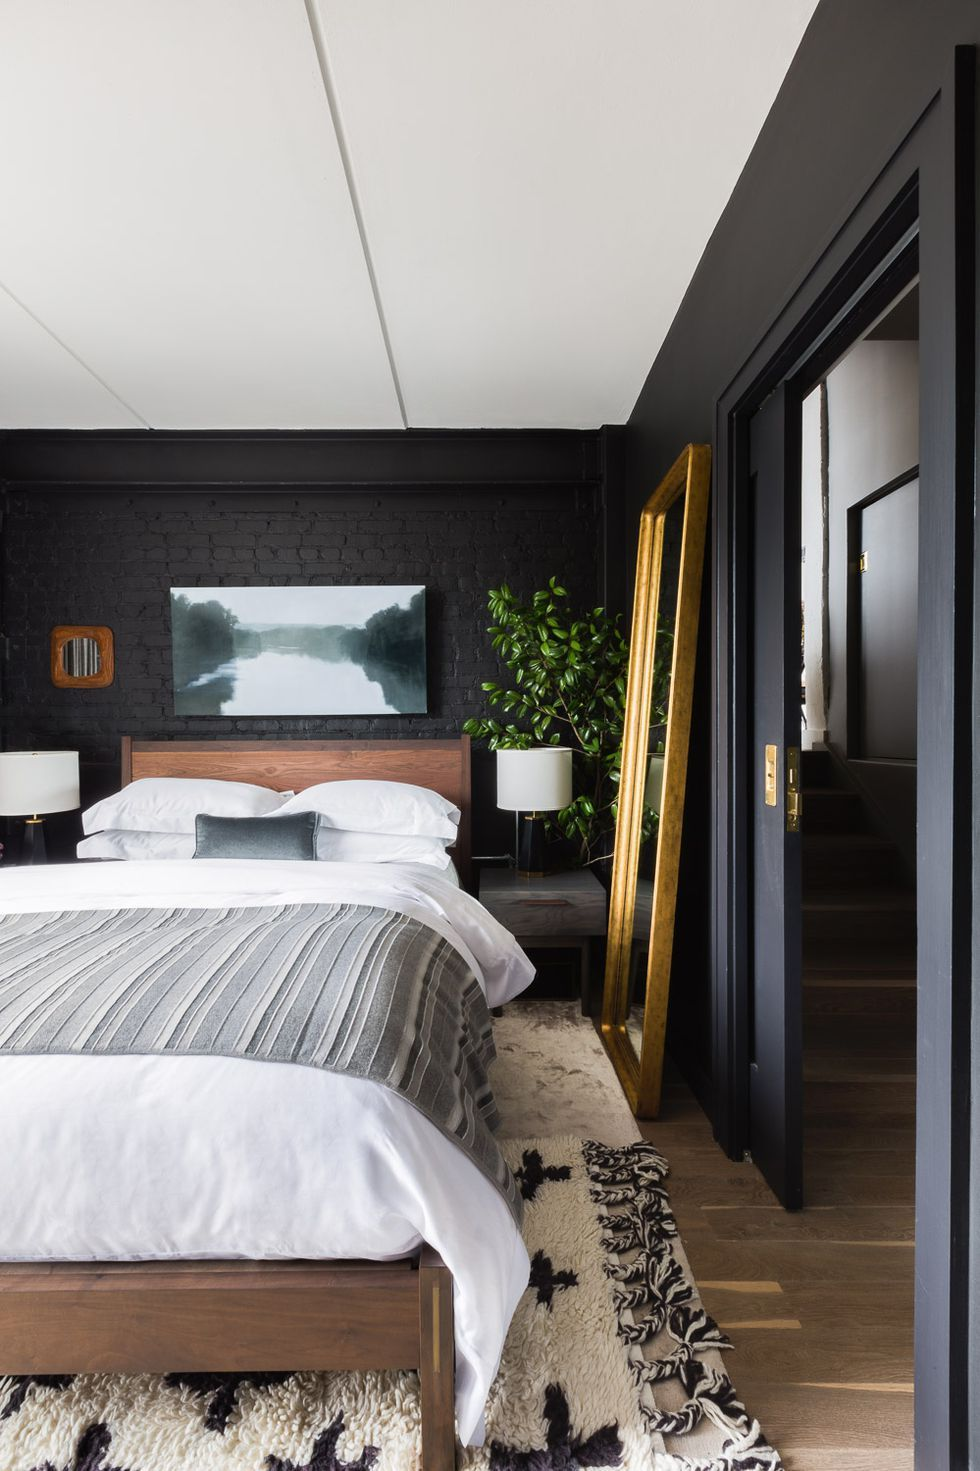 35 black room decorating ideas how to use black wall paint \u0026 decor